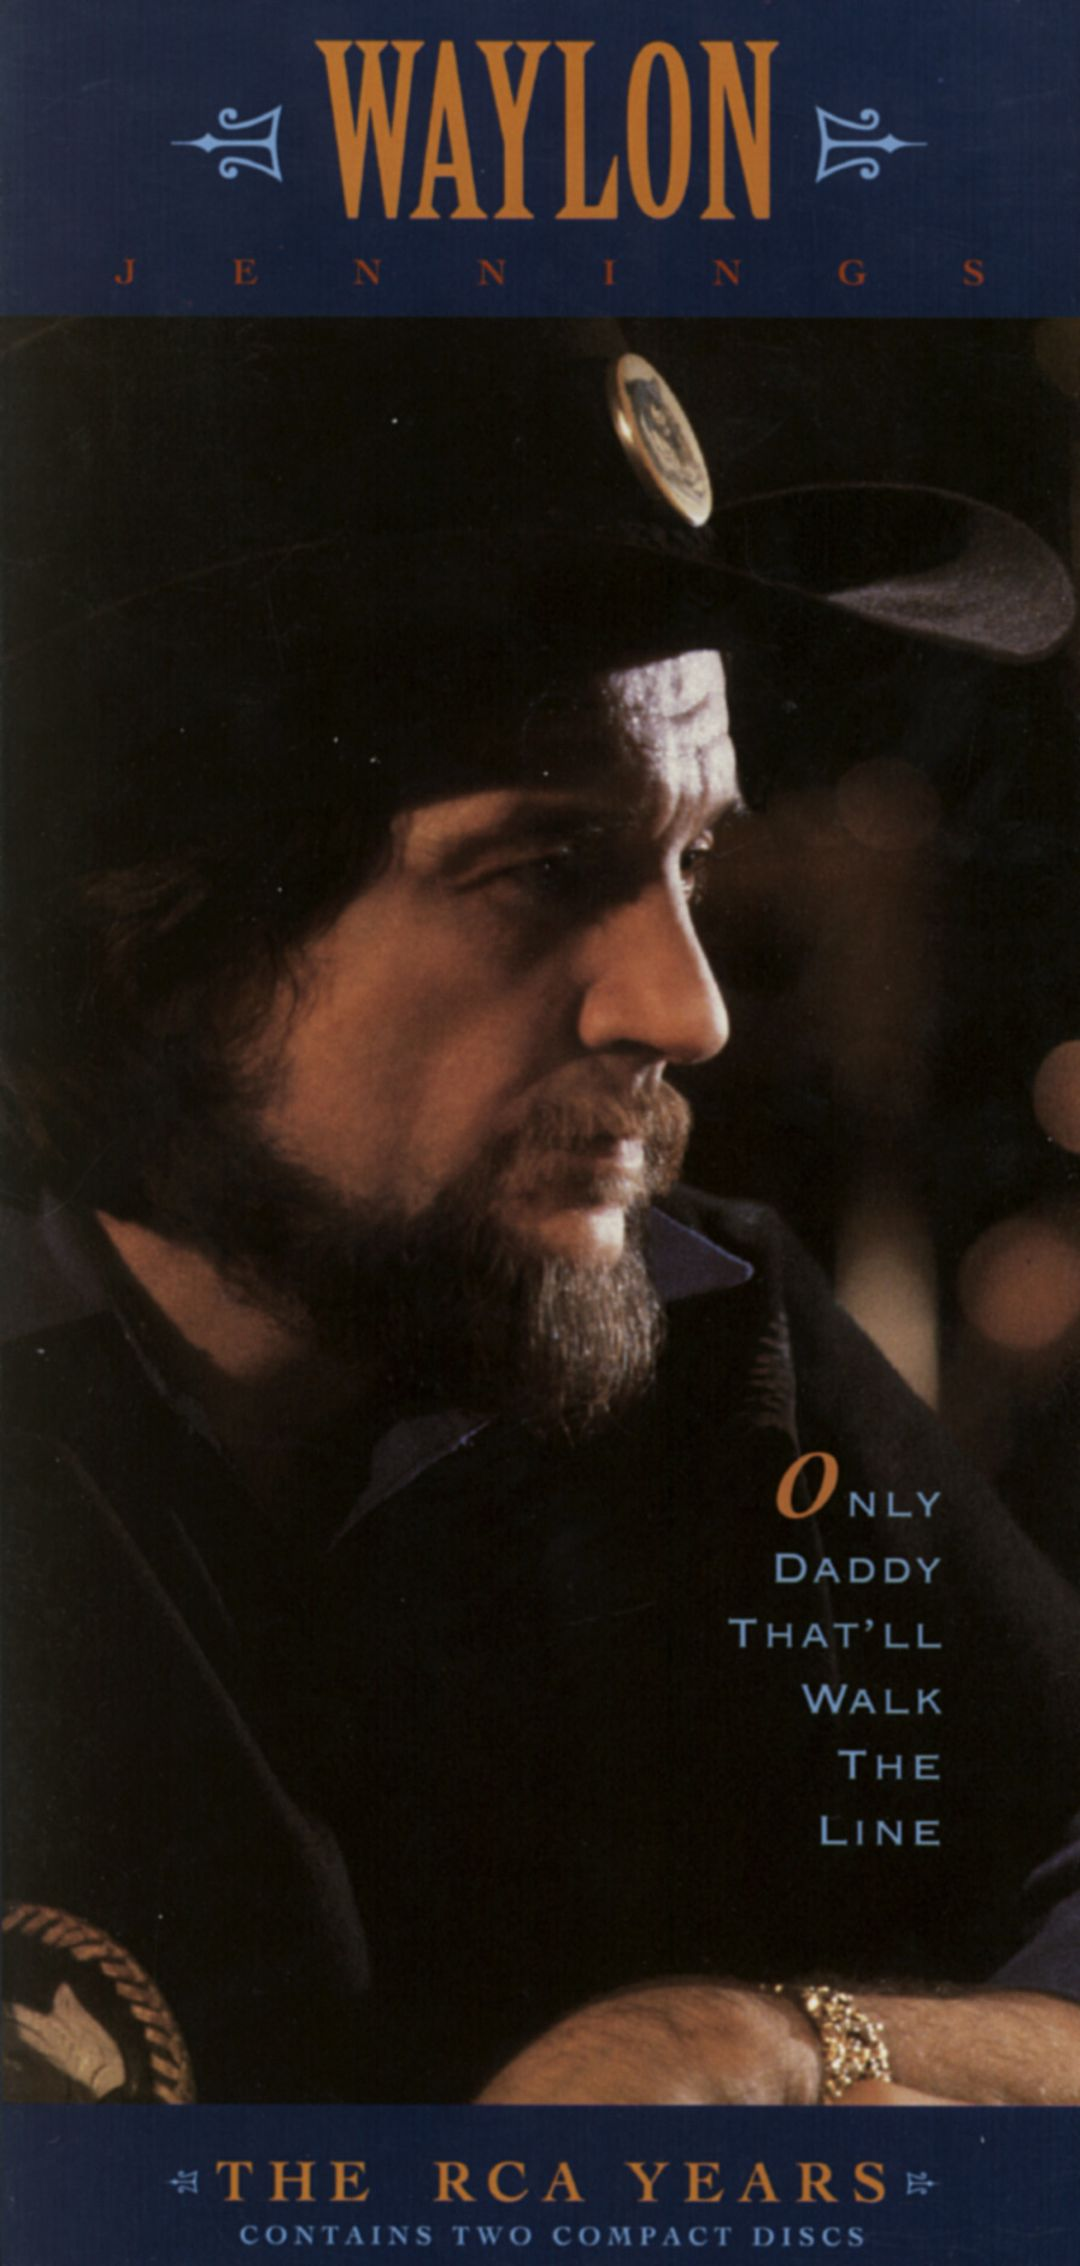 Only Daddy That'll Walk the Line: The RCA Years